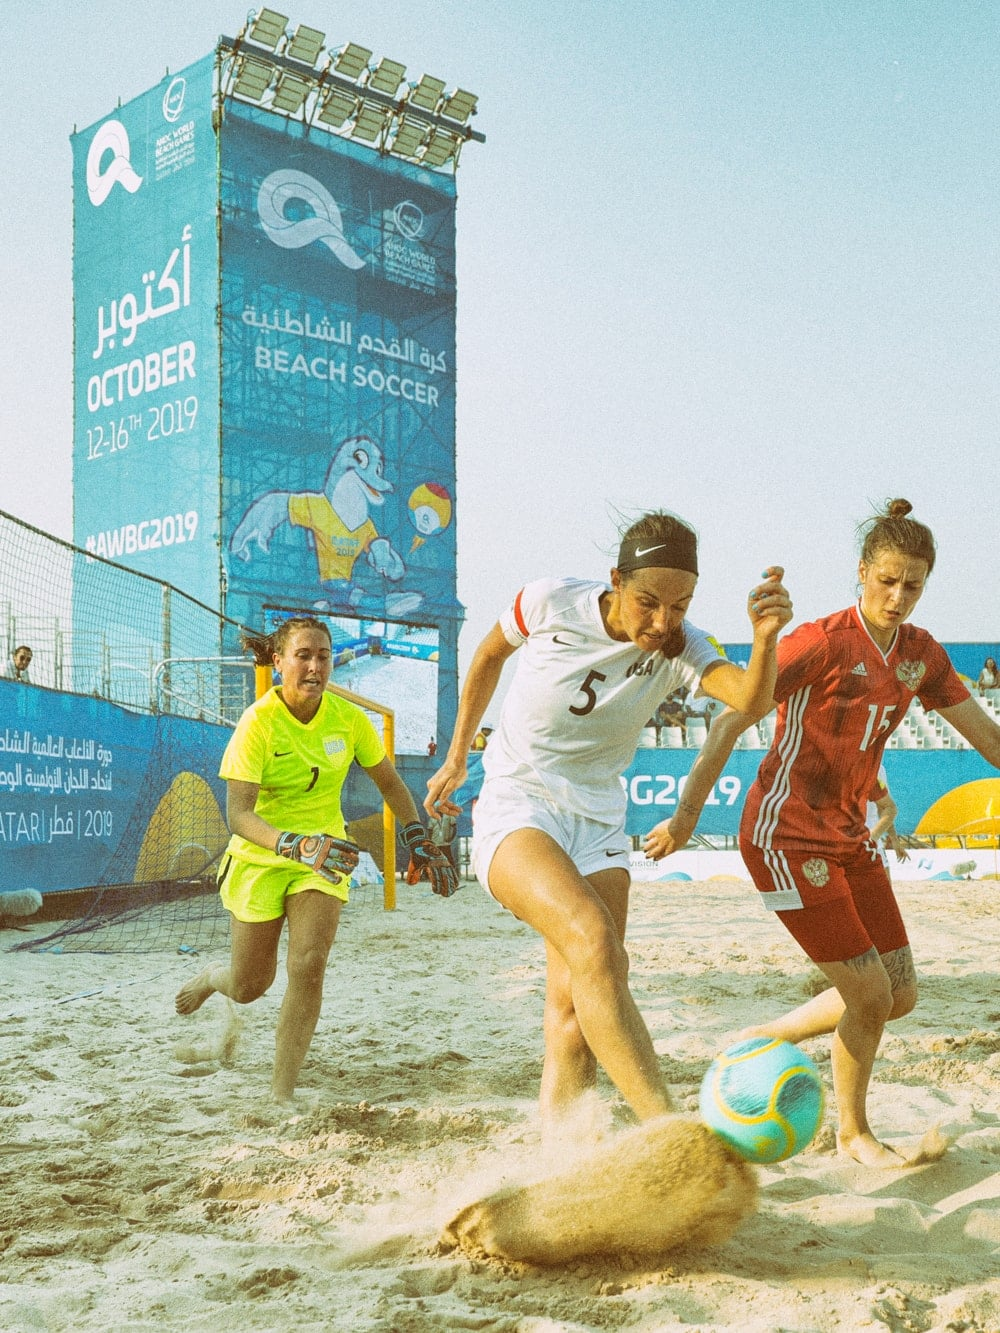 qatar 2019 awbg beach soccer female